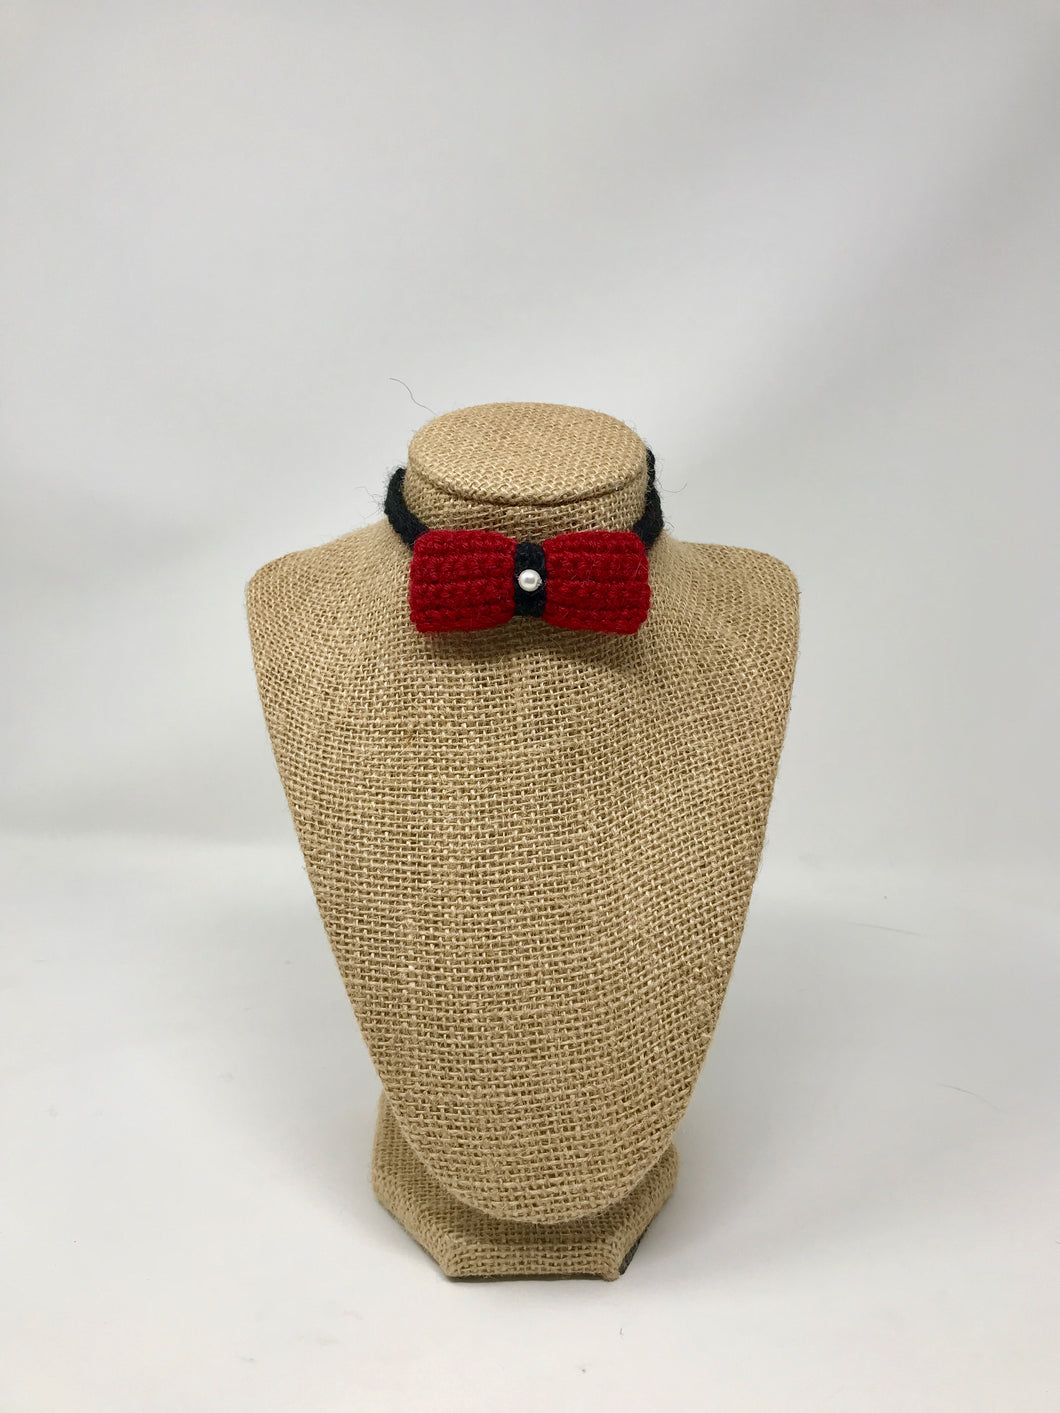 Mini Bow Tie Pet Collar -Red/Black